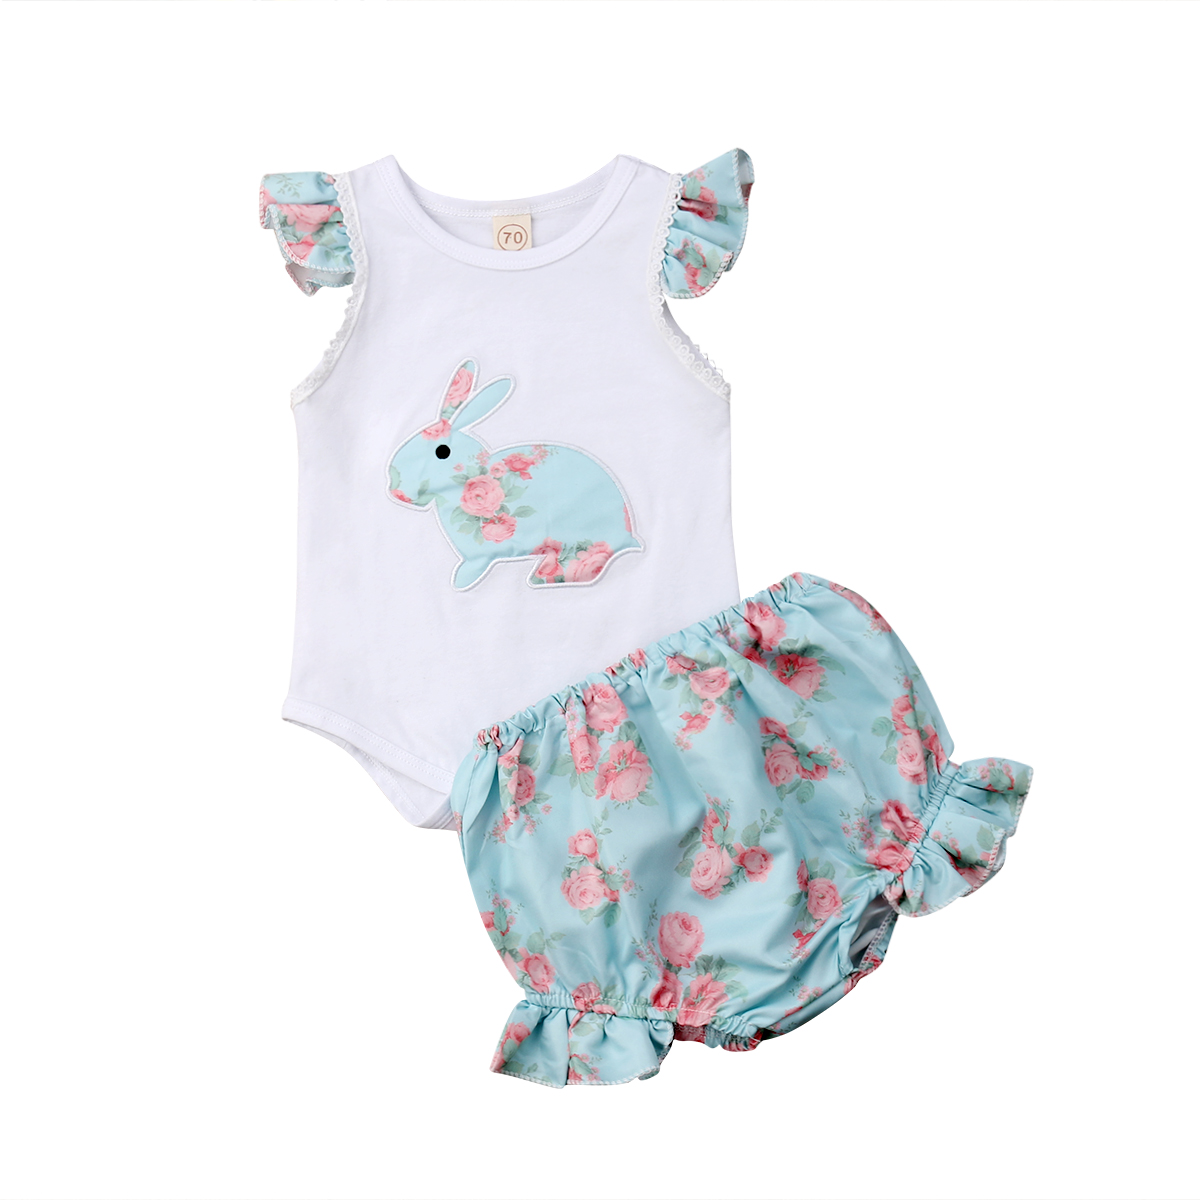 4aeb366f5d87 Newborn Infant Baby Girl Easter Outfit Ruffle Sleeveless Bunny Romper  Cotton Tops+Floral Tutu Shorts Girls 2Pcs Clothes Set